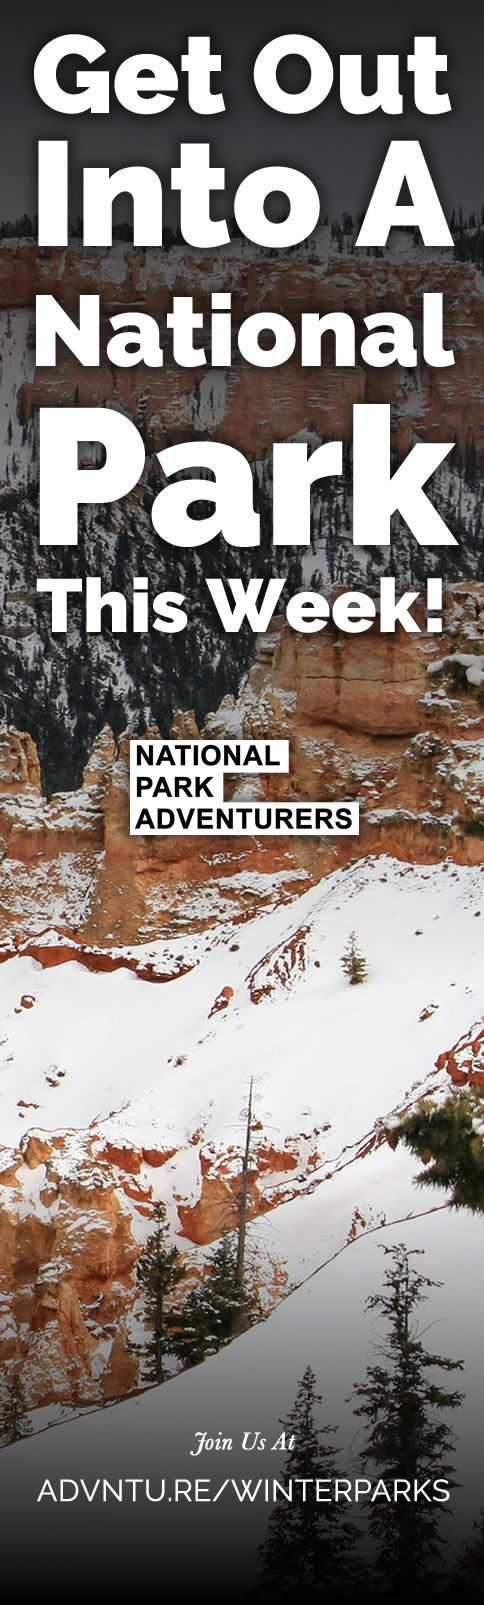 Get Out Into A National Park This Week! - 12/27/2016    As 2016 comes to a close, and families across the U.S. join each other during the holidays to reflect on another year, it's a great time to get one more park visit in before the Centennial year ends. During the course of 2016, the National Park Service has celebrated its 100th anniversary; and plenty of people have flocked to the parks to celebrate with them, over 310 million to date. http://advntu.re/winterparks